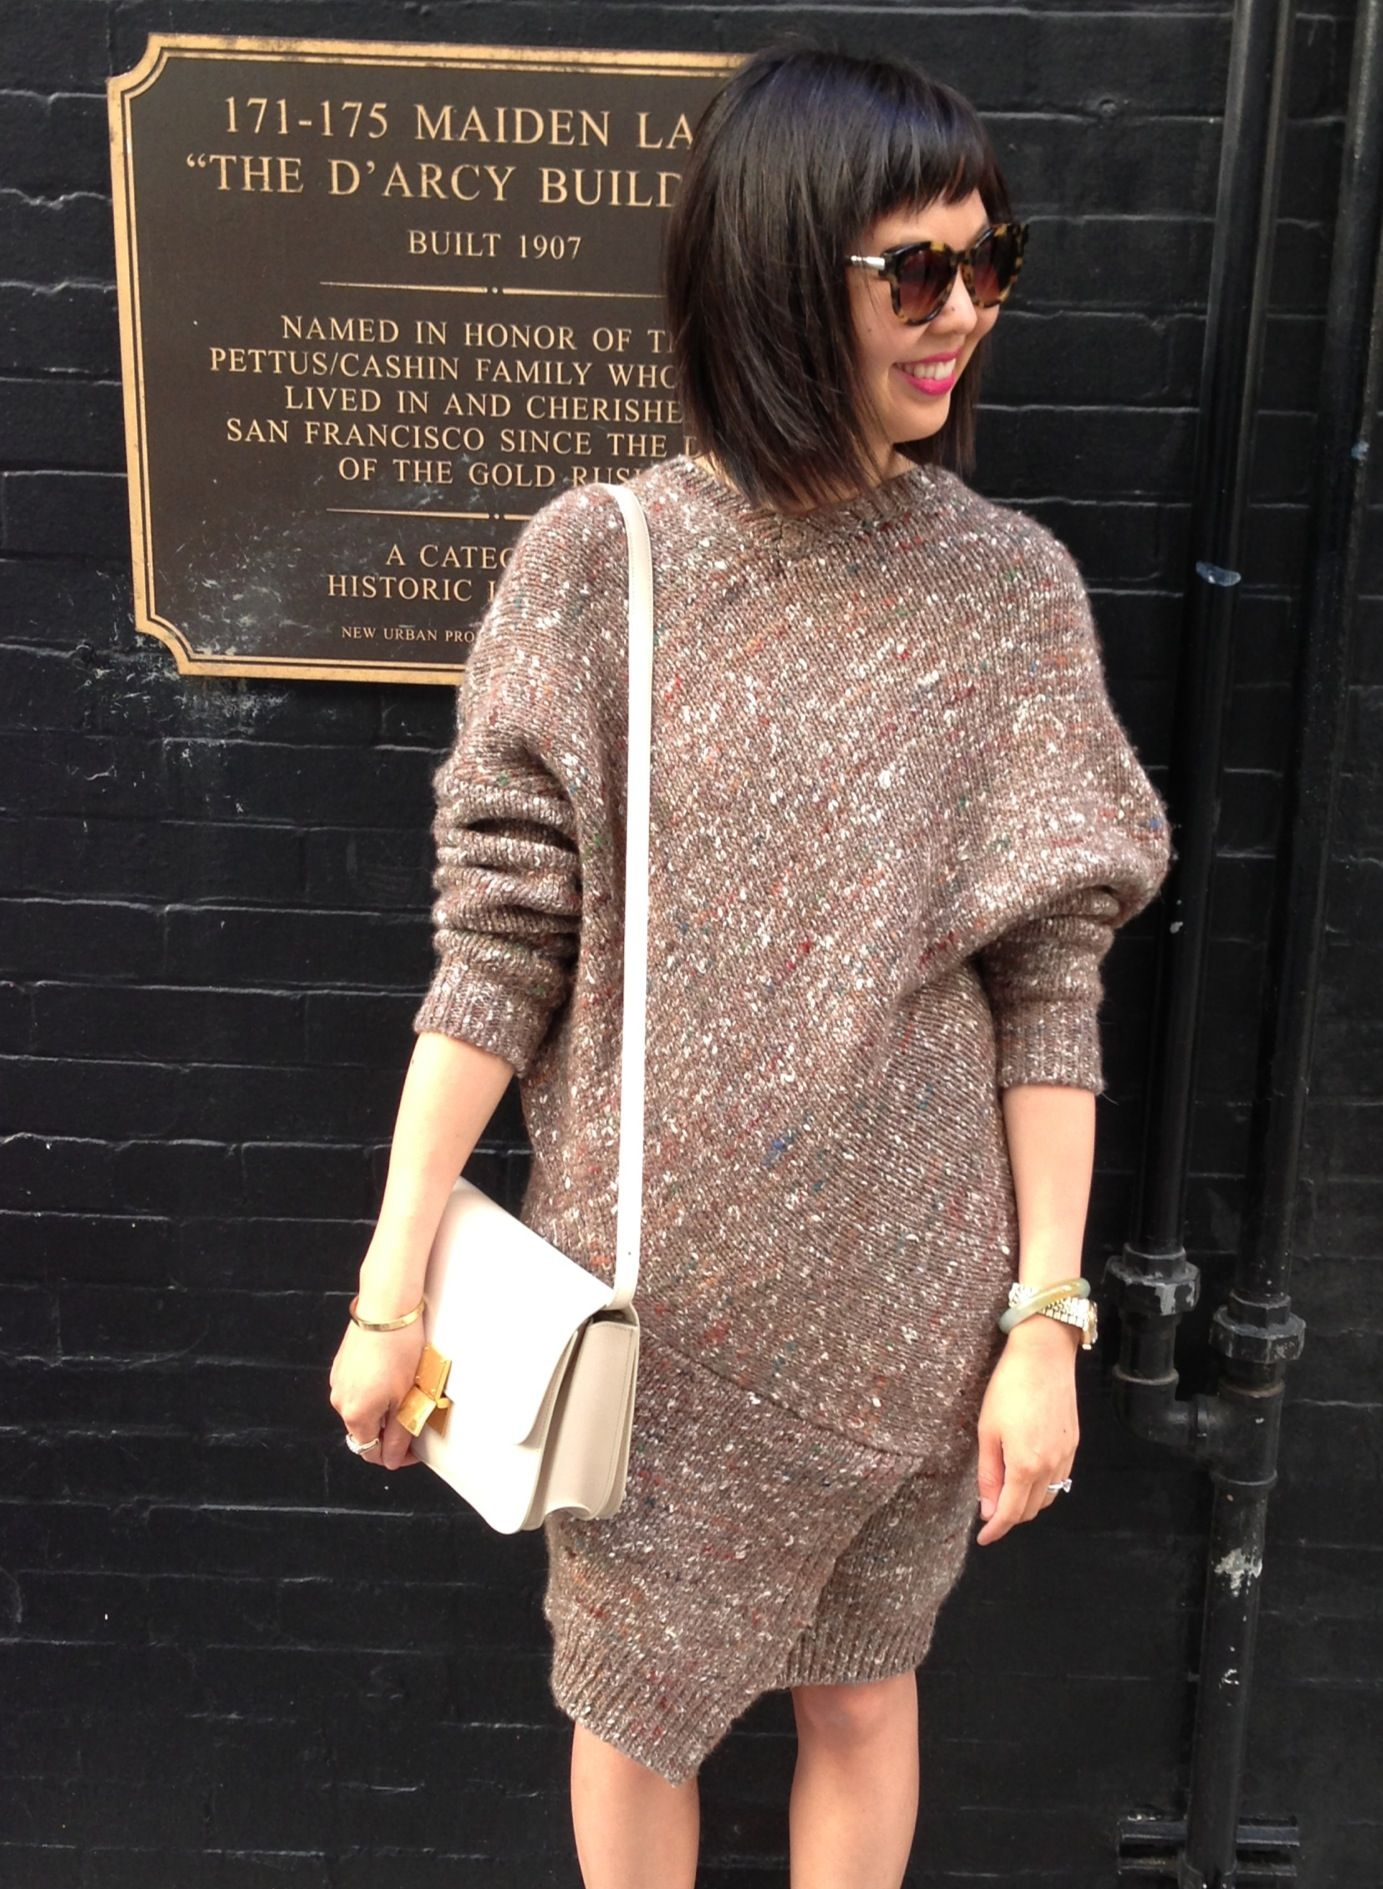 stella mccartney chunky knit sweater dress with celine box bag in ivory and  thierry lasry sunnies e879bdb4a5fd